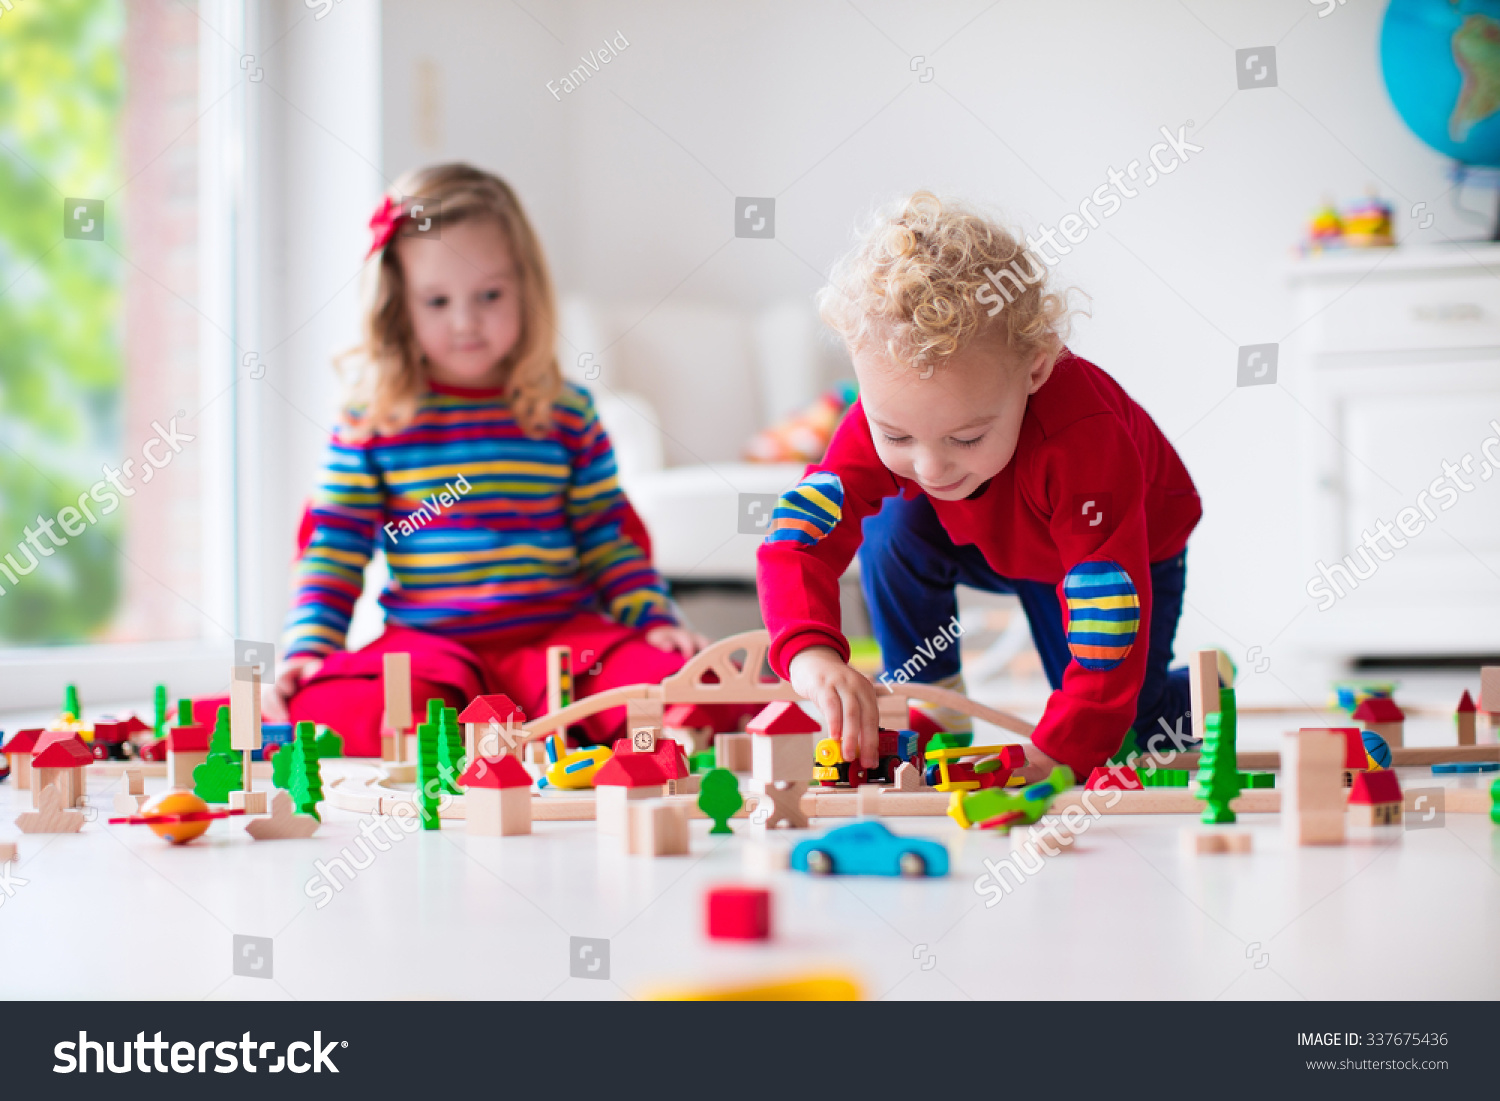 Children playing with wooden train Toddler kid and baby play with blocks trains and cars Educational toys for preschool and kindergarten child Boy and girl build toy railroad at home or daycare